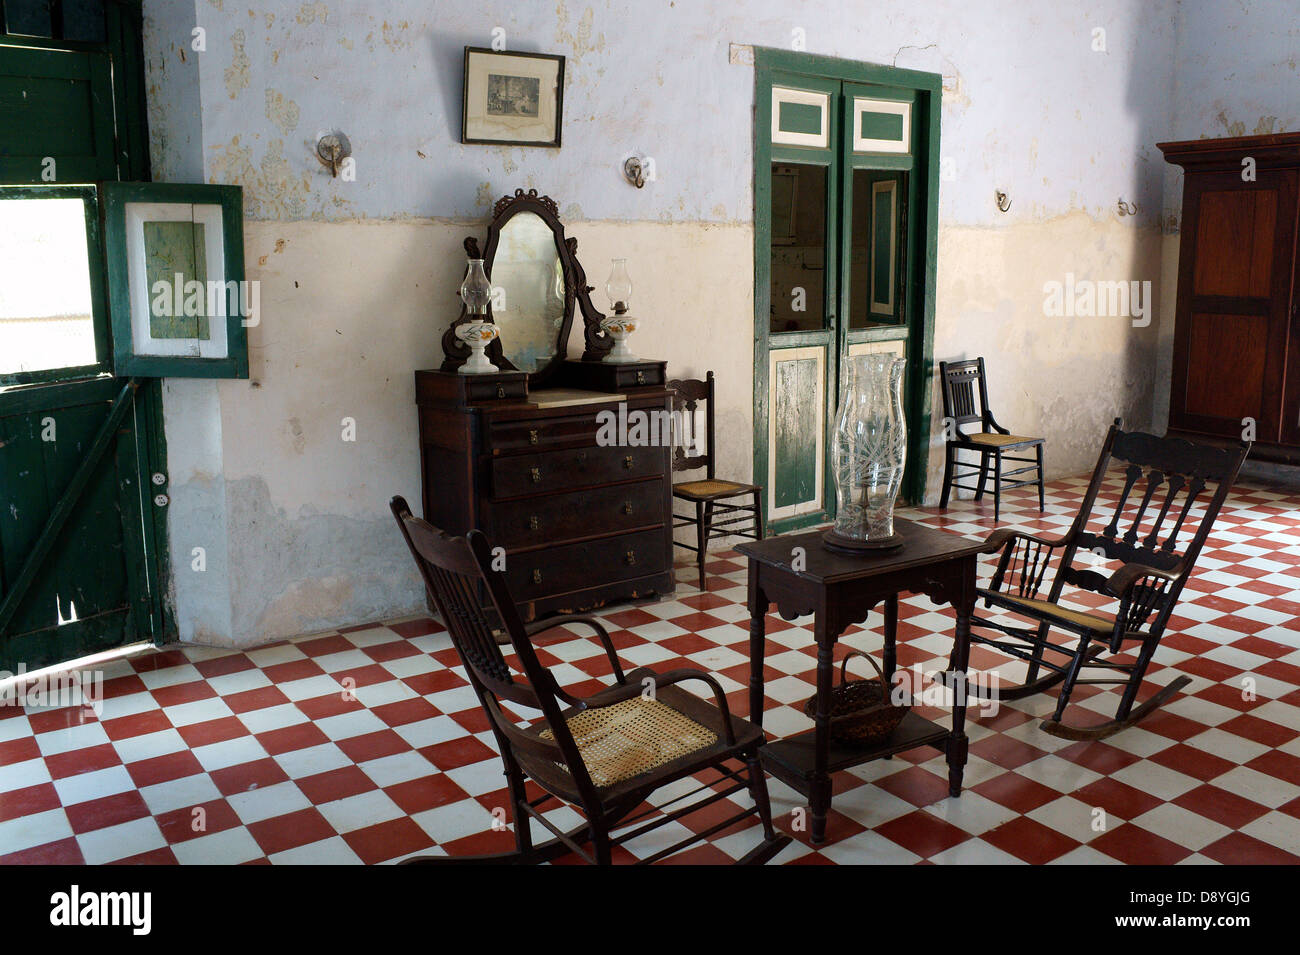 Room with colonial antique furniture in the main building at Hacienda Yaxcopoil, Yucatan, MexicoStock Photo